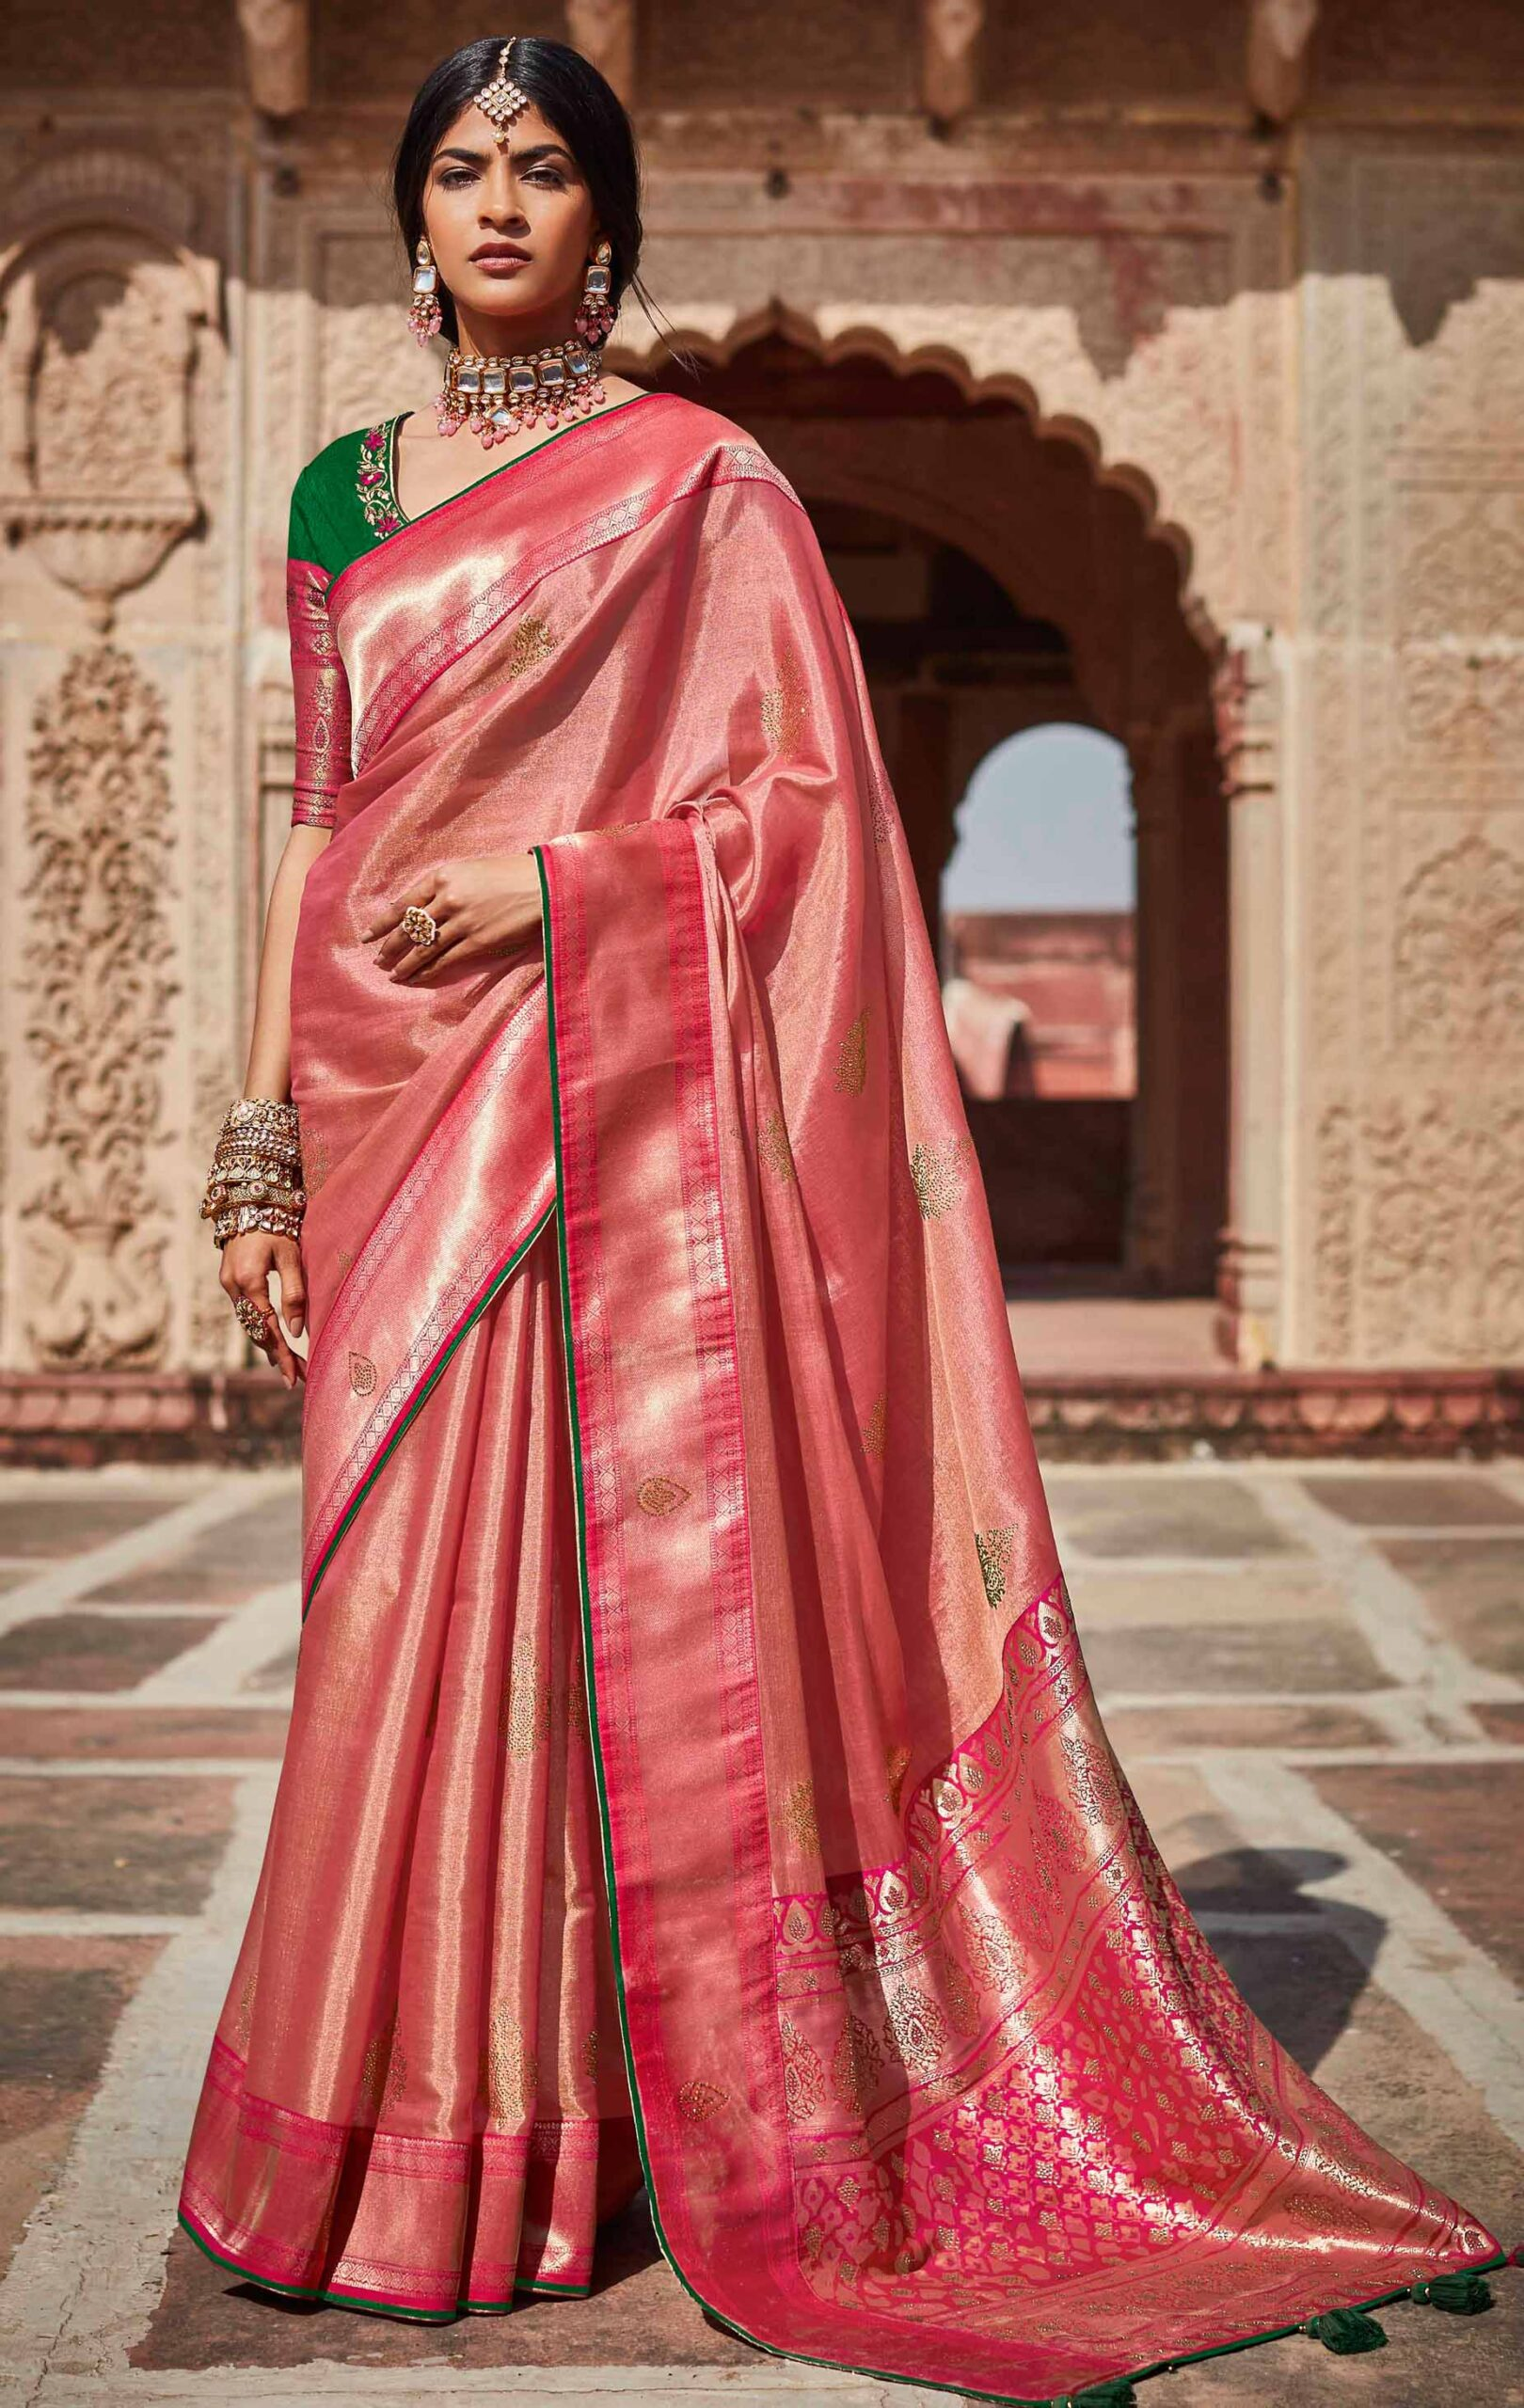 Saree New Style for New Bride